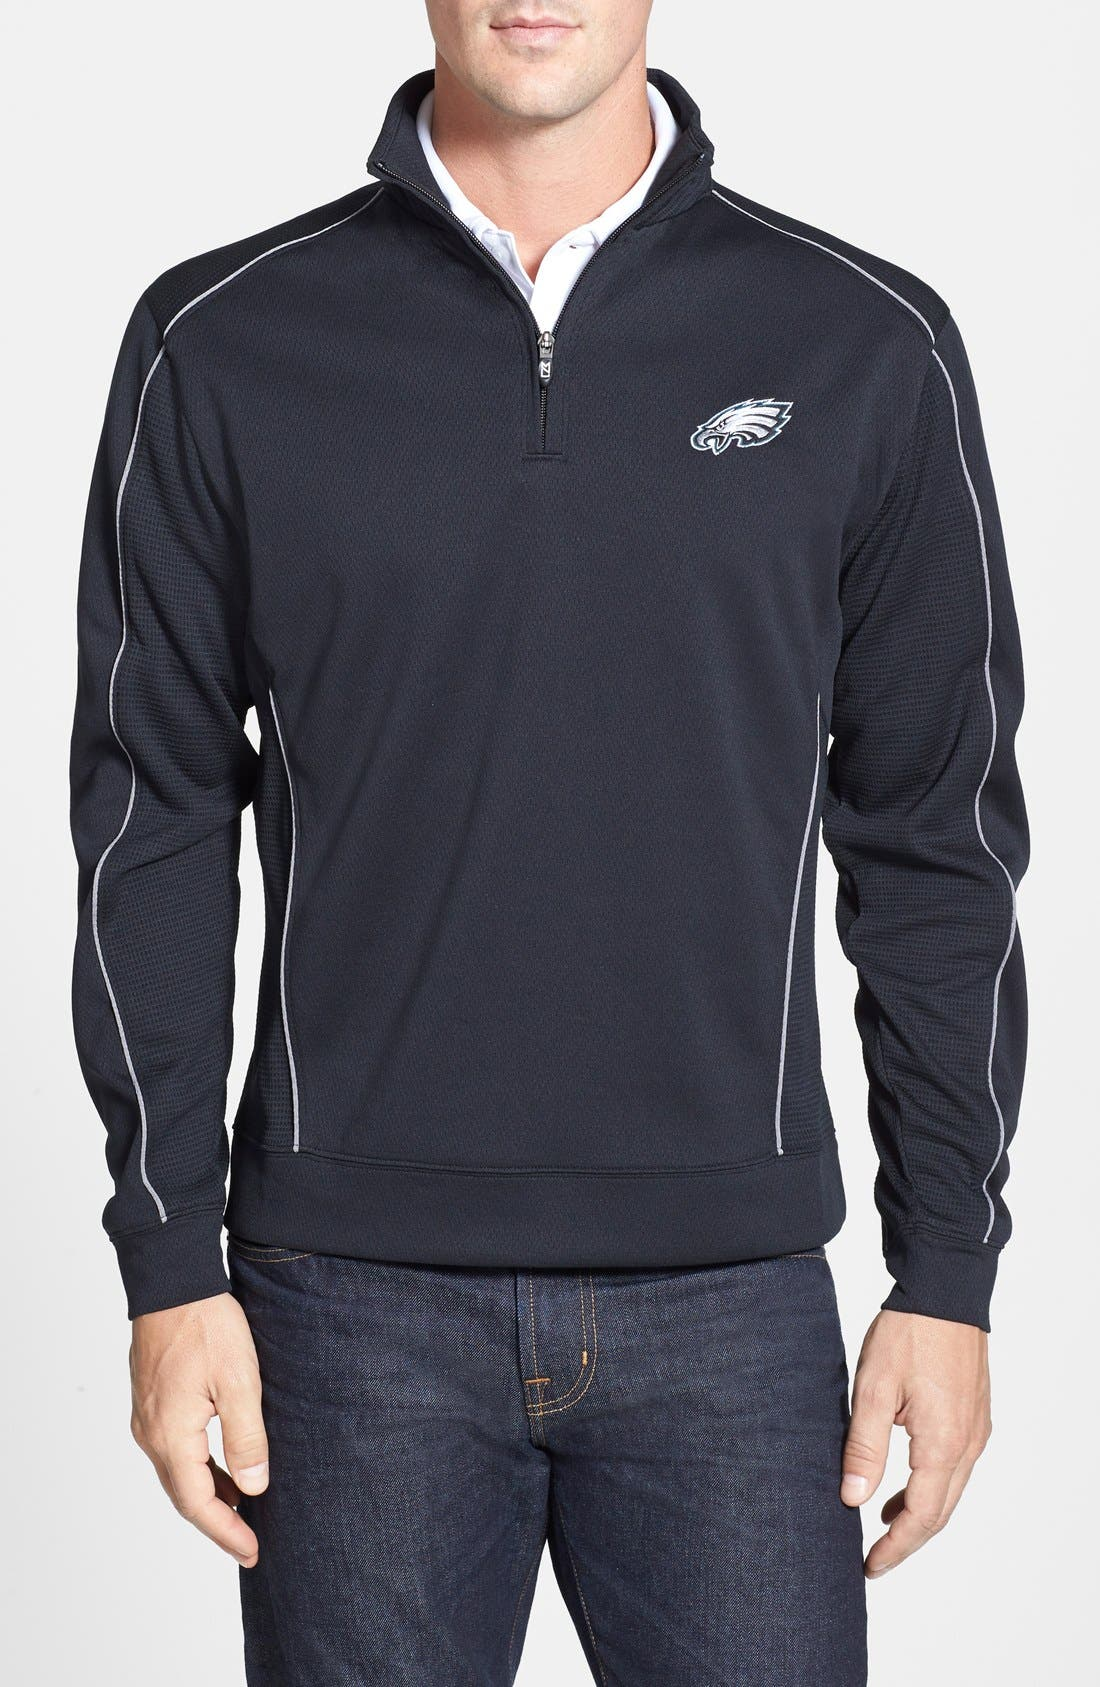 Cutter & Buck 'Philadelphia Eagles - Edge' DryTec Moisture Wicking Half Zip Pullover (Big & Tall)